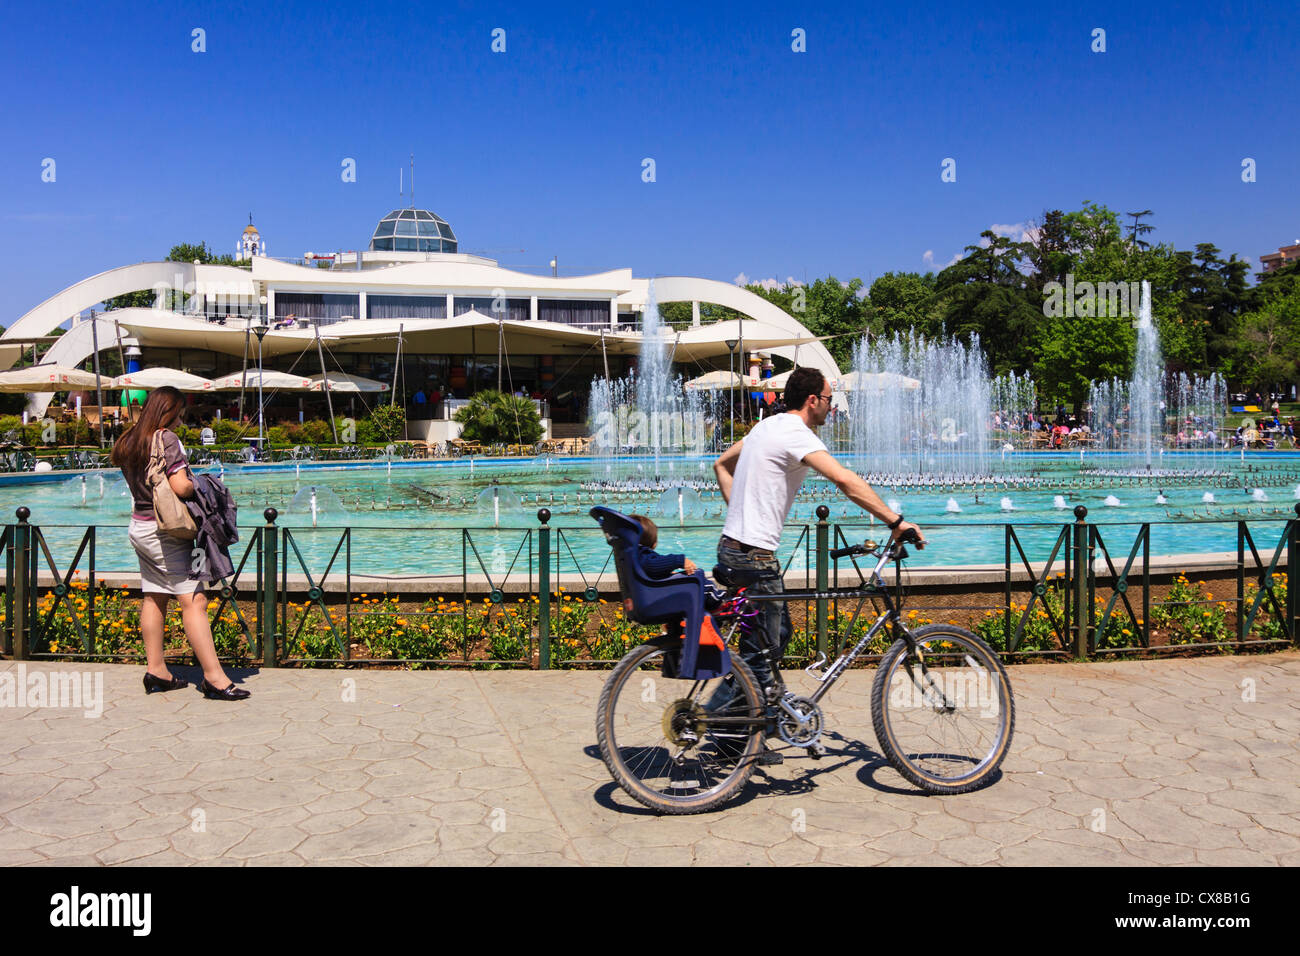 People by Taiwan entertainment center in Rinia Park, Tirana, Albania - Stock Image